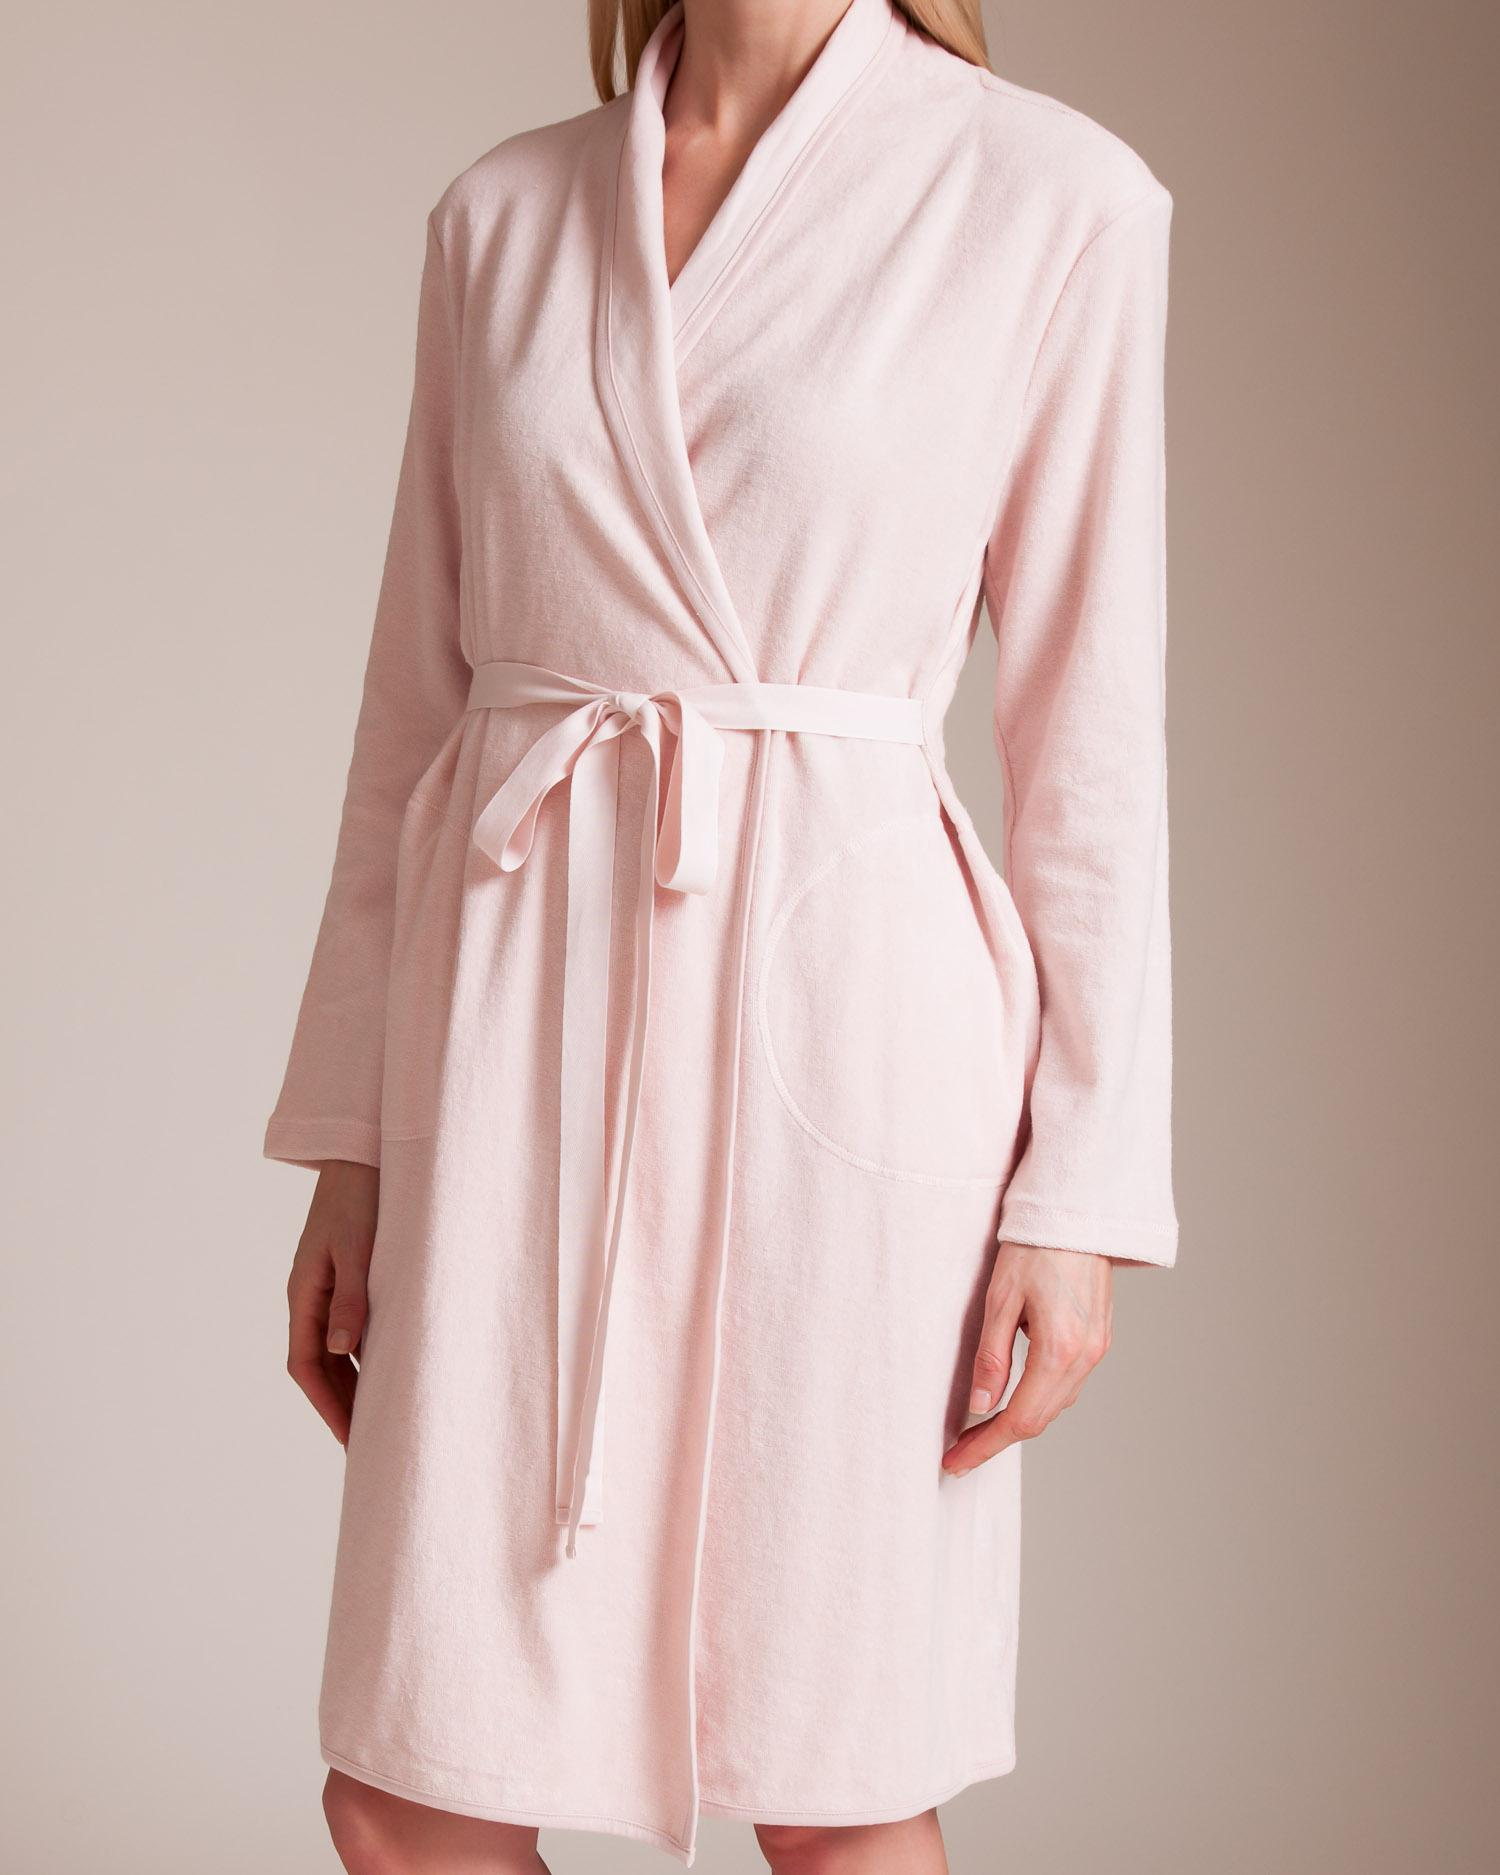 Lyst - Skin Micro French Terry Robe in Pink 2fdc67ea3